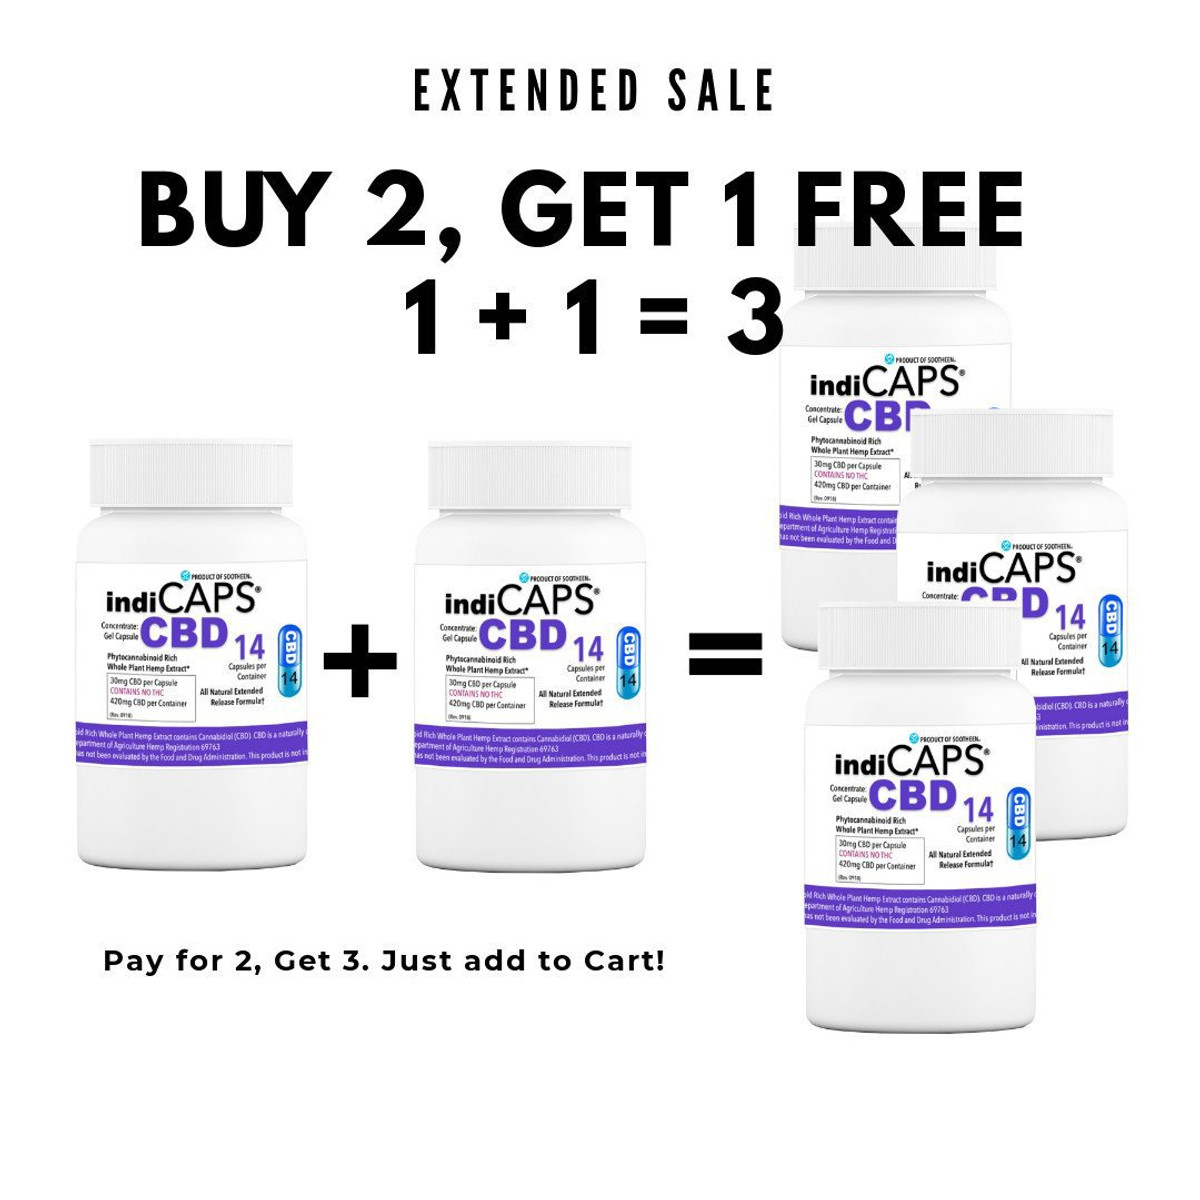 1 +1 = 3 | indiCAPS® CBD Capsules - 30 mg / 14 capsules per bottle (420 mg per bottle)